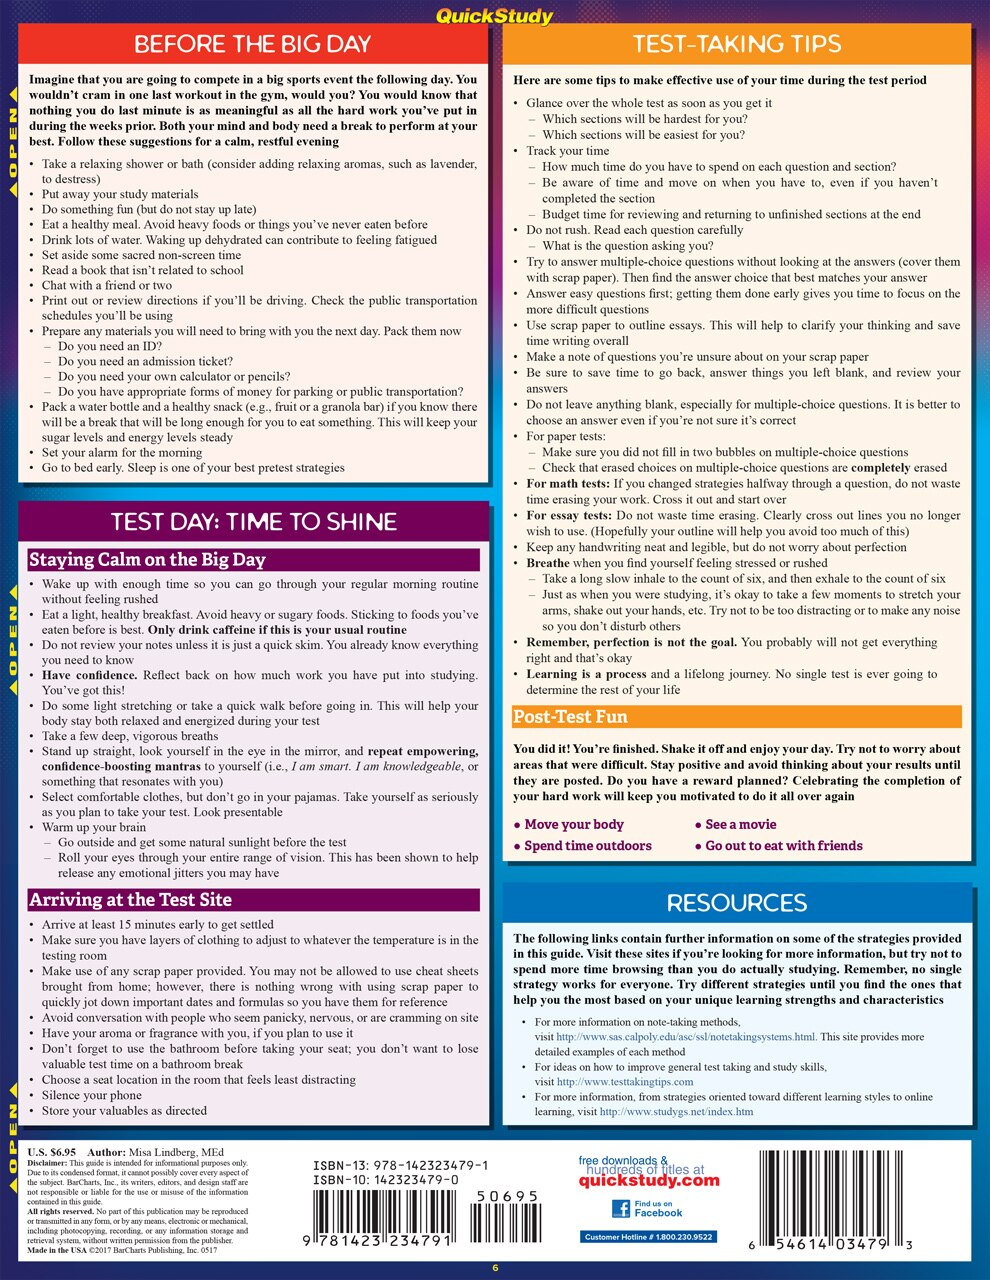 Quick Study QuickStudy Studying: Tips, Tricks & Hacks Laminated Study Guide BarCharts Publishing Academic Education Reference Back Image